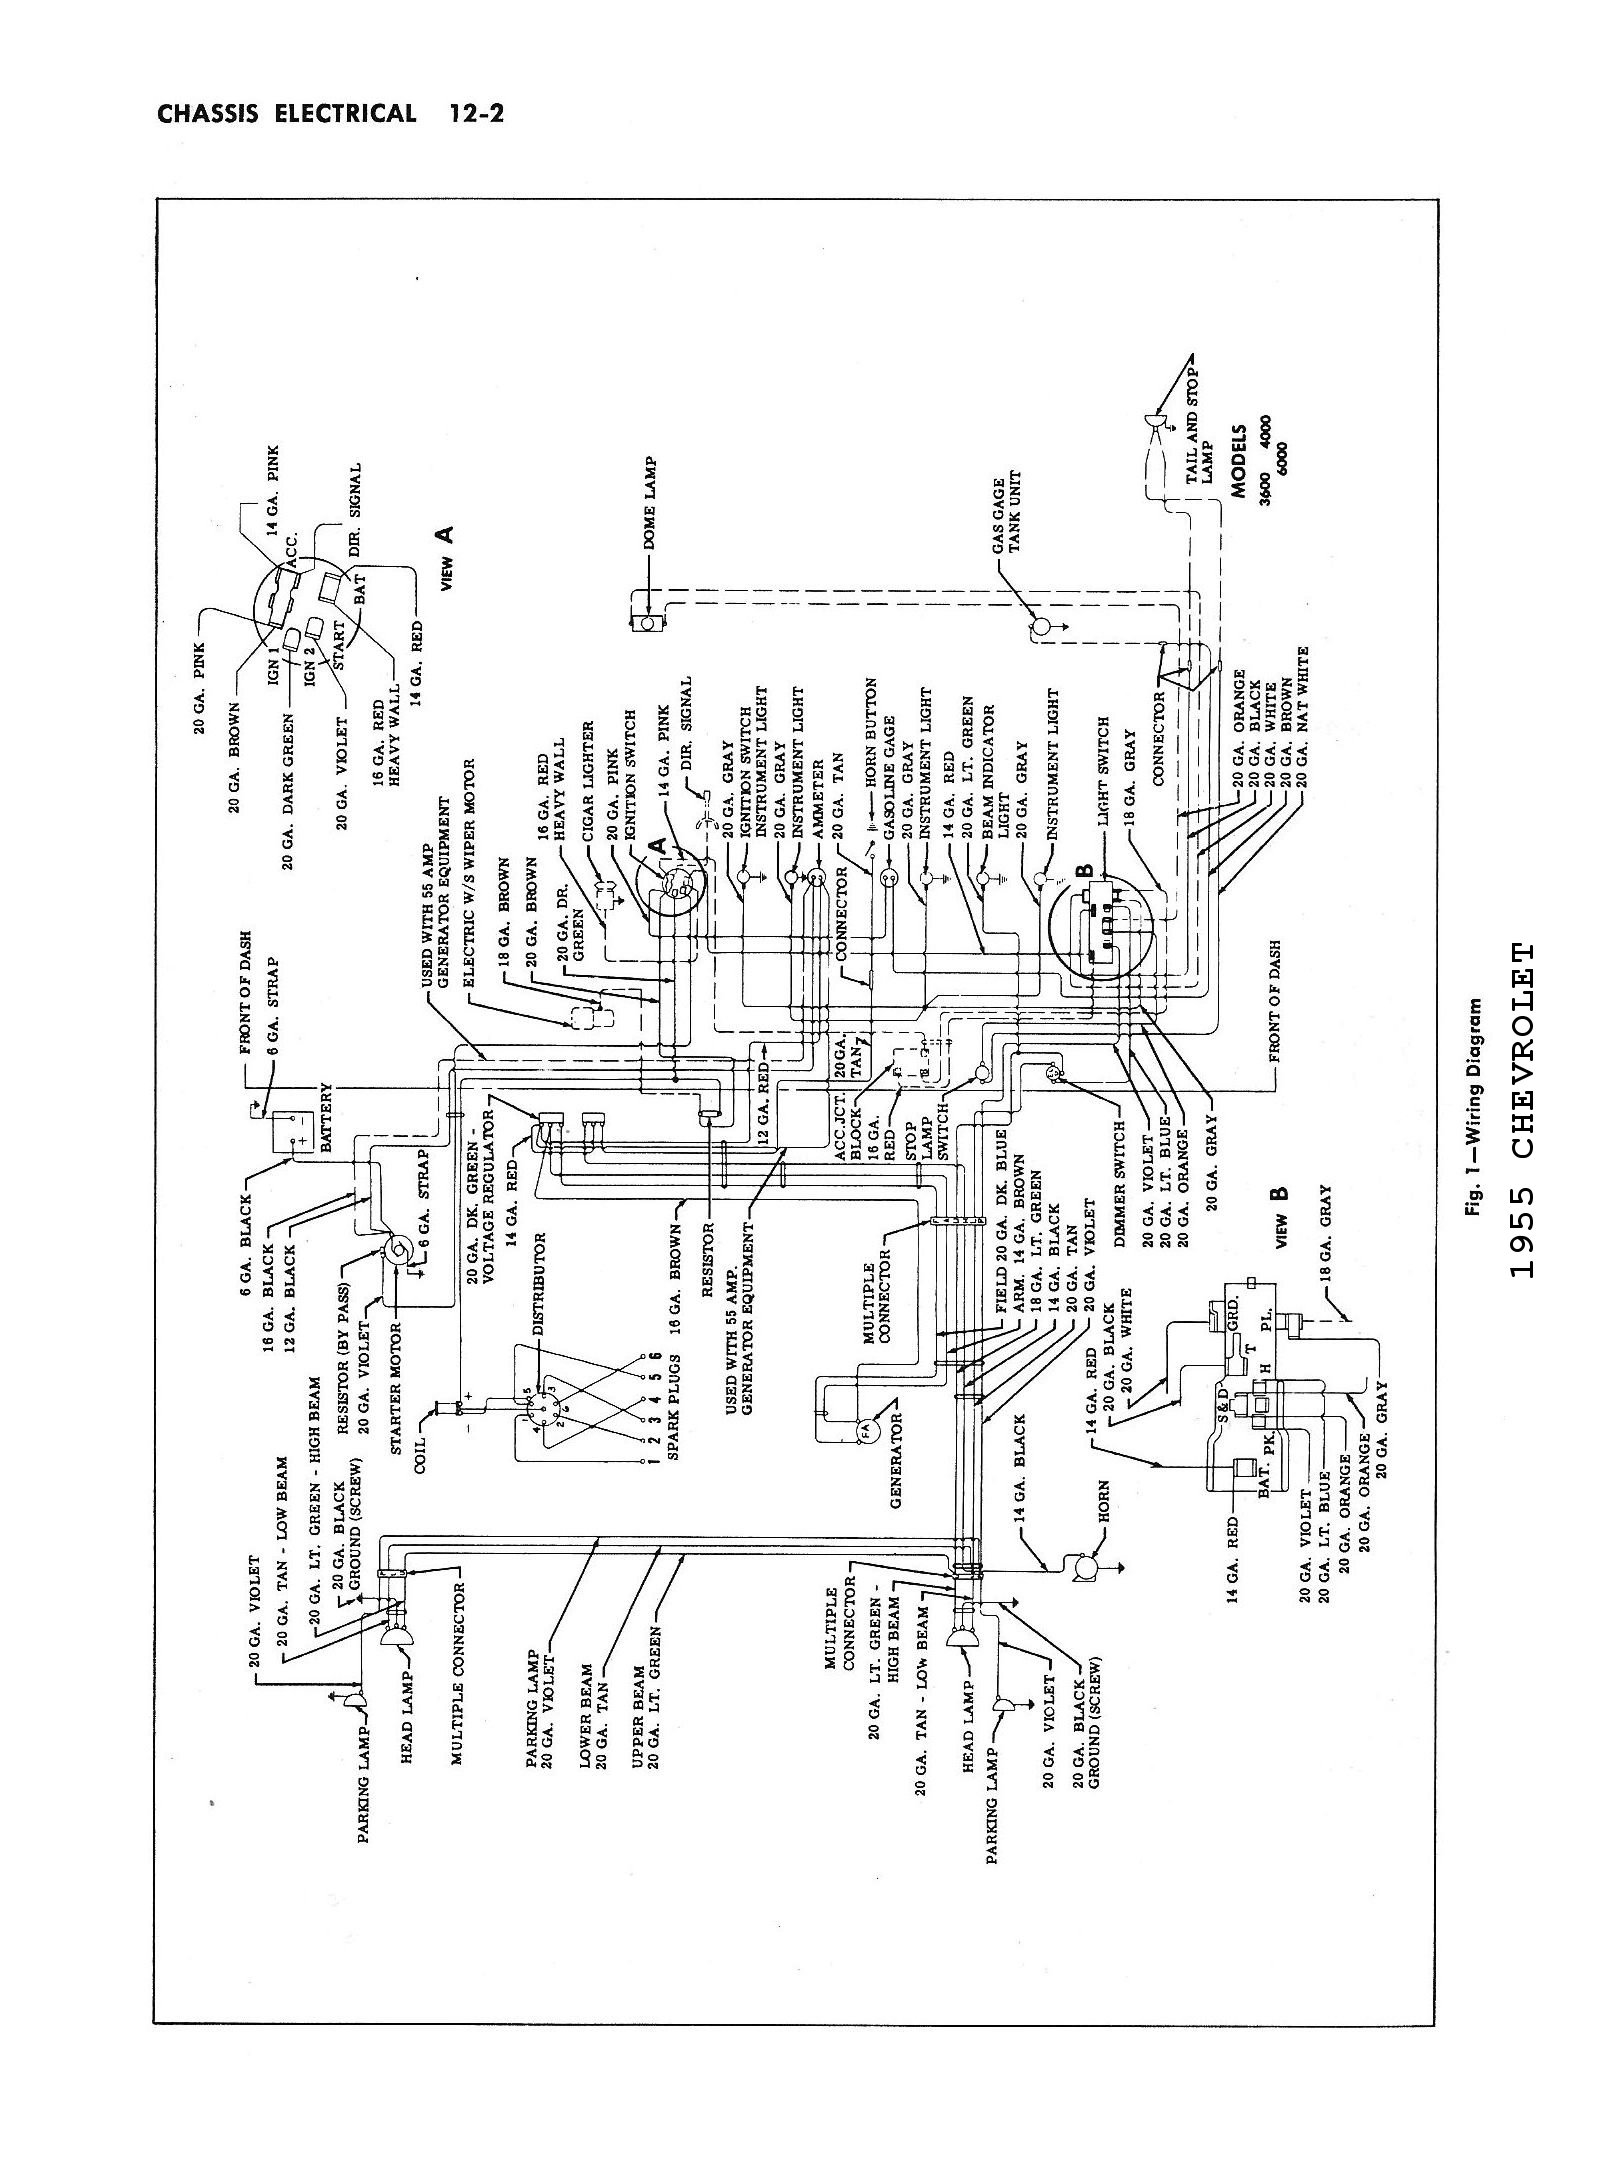 Painless Chevy Ignition Switch Wiring Painless Automotive Wiring - 1950 mercury wiring diagram